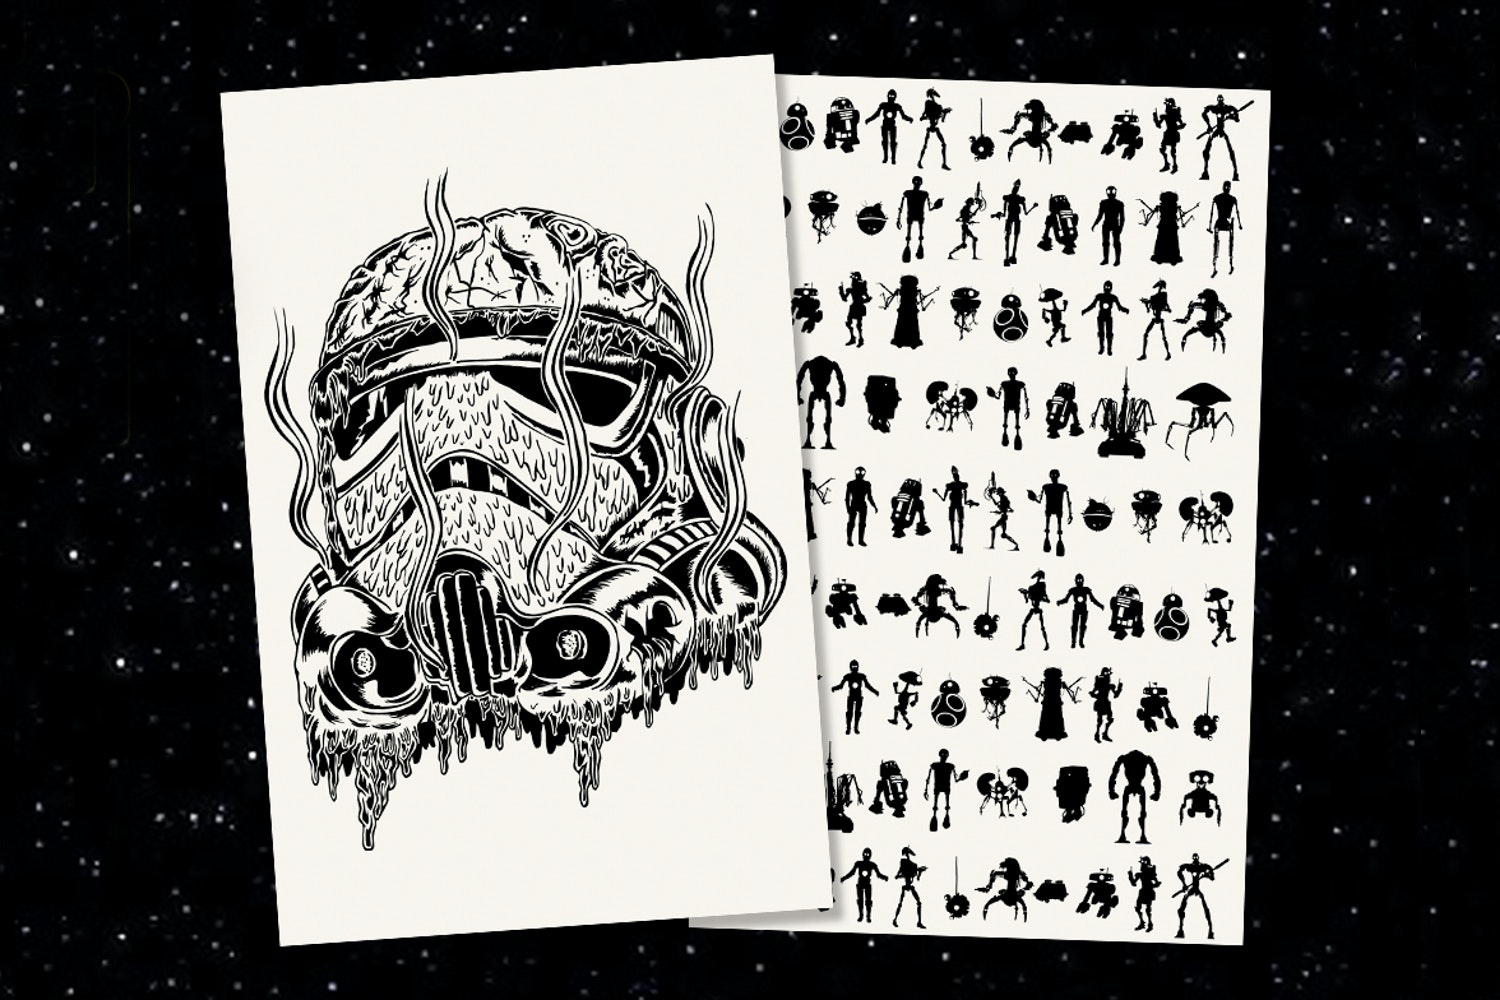 Inked & Screened Limited Edition May the 4th Prints